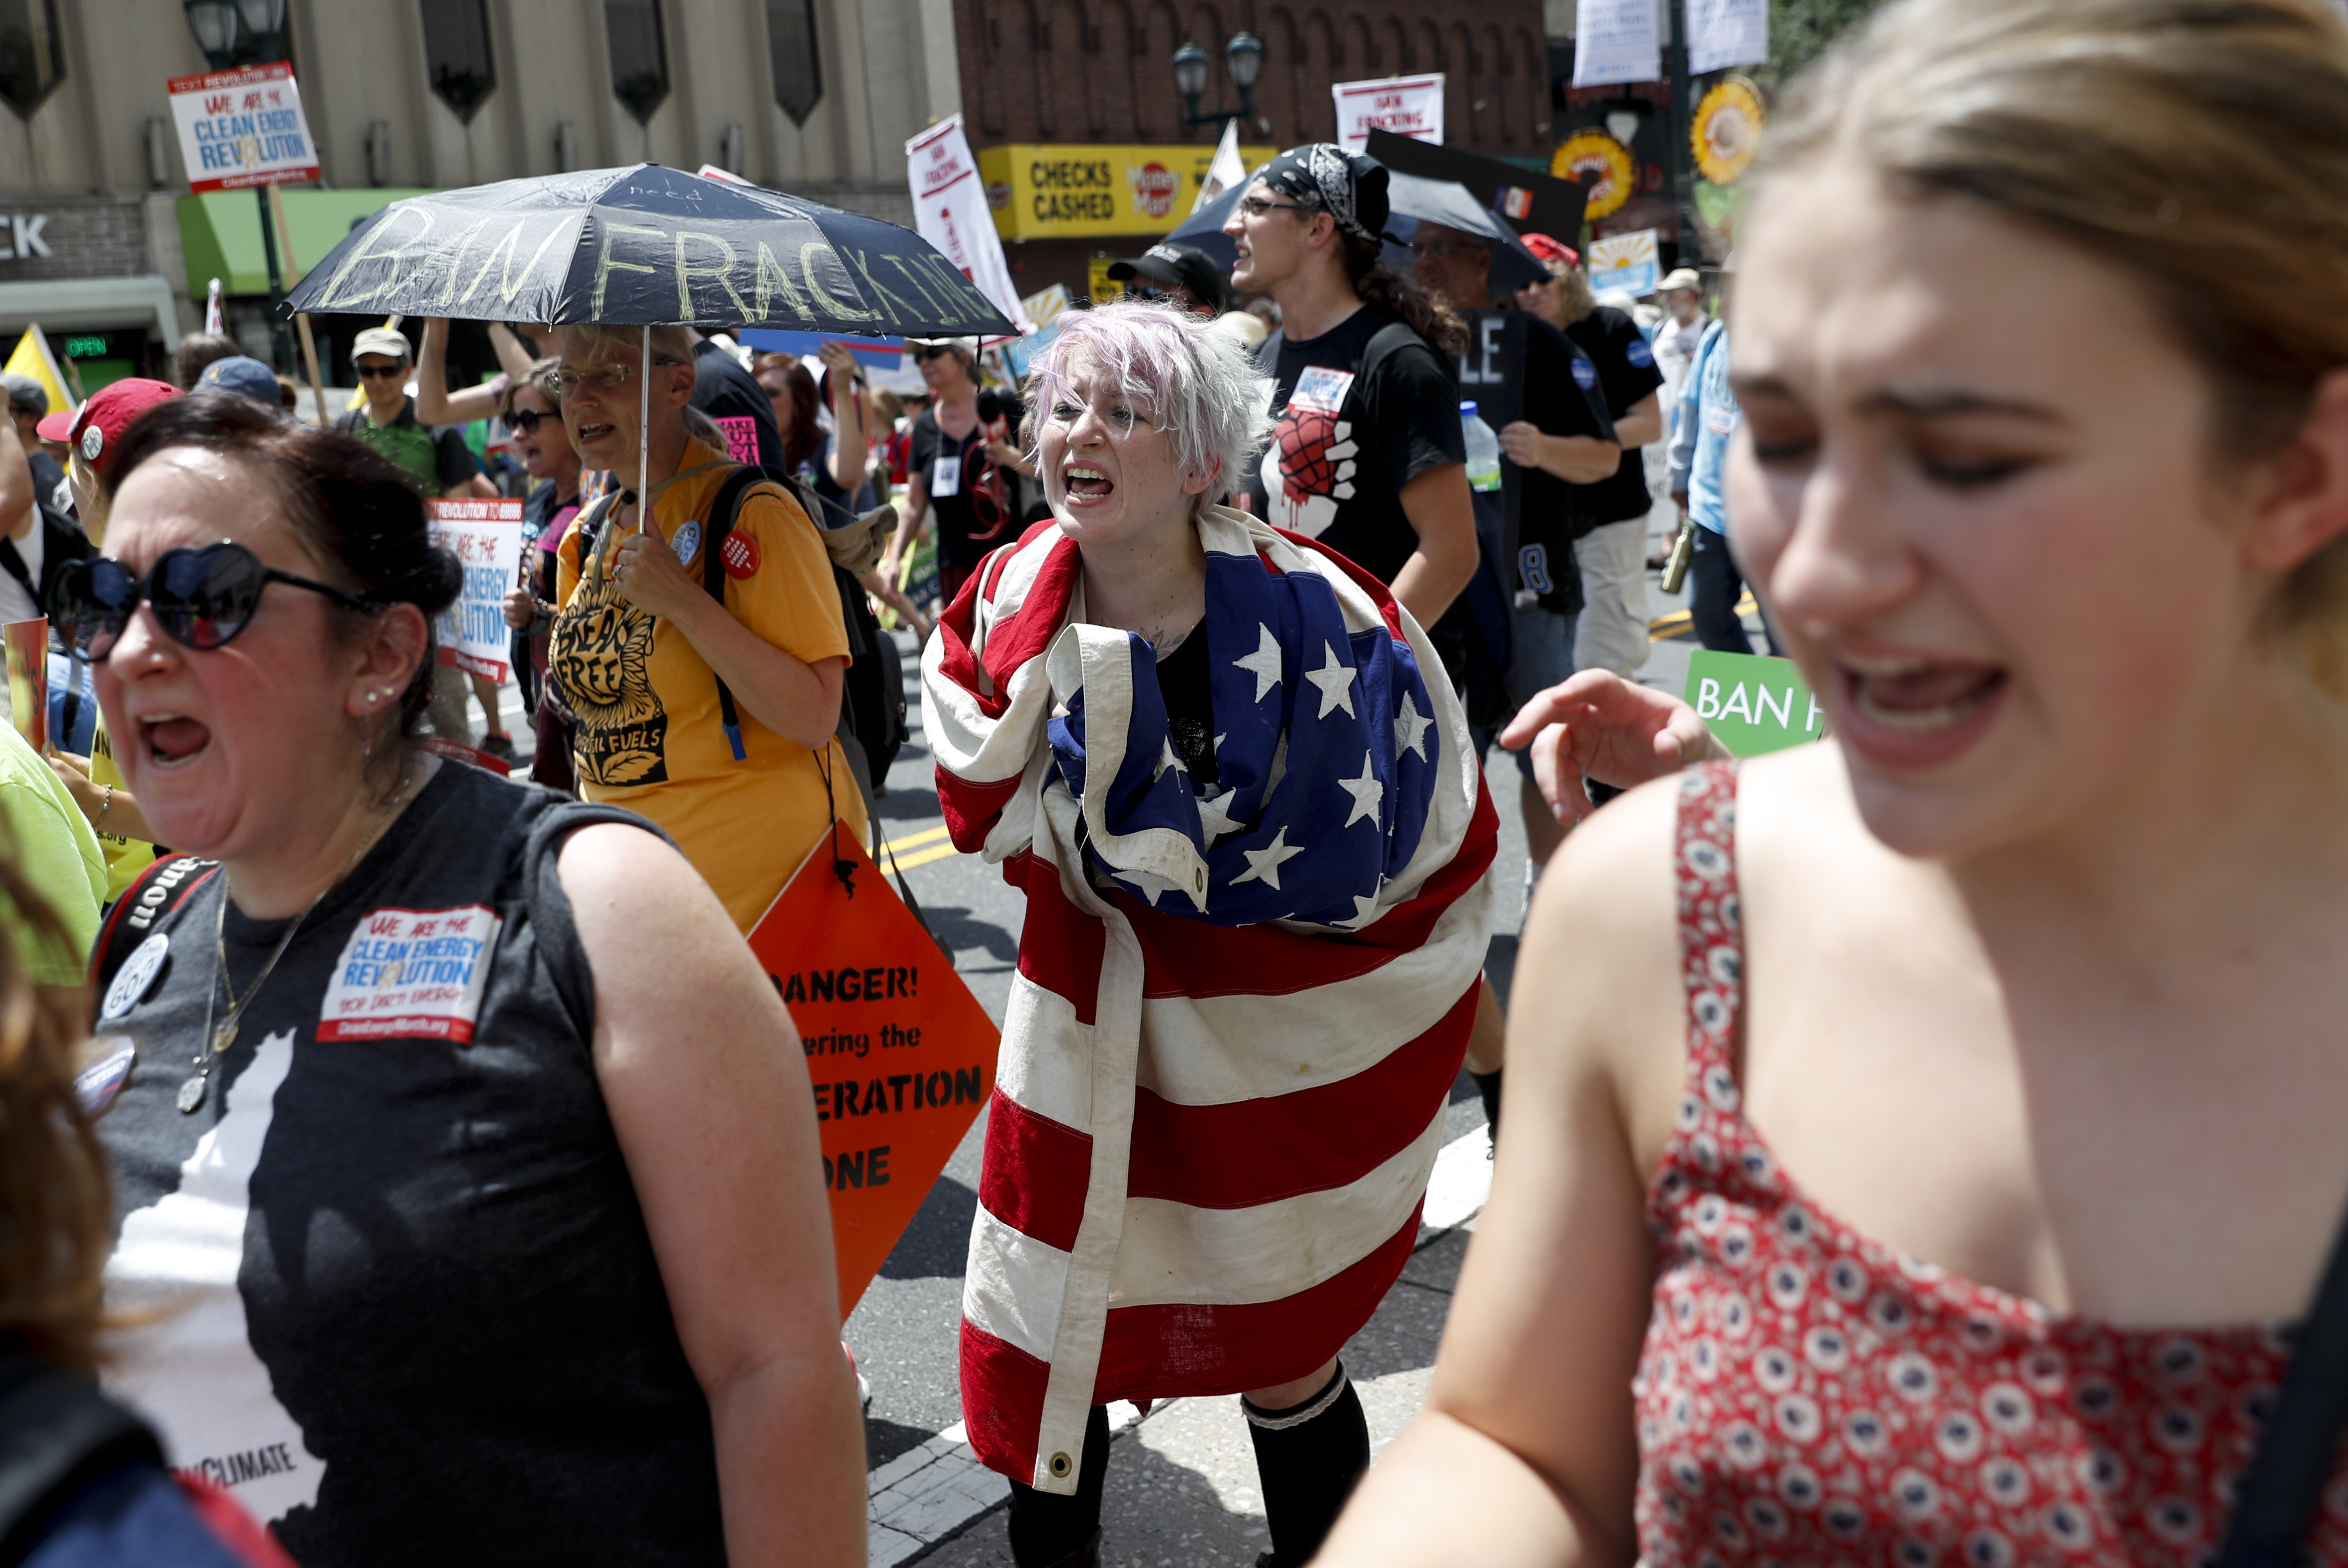 Protesters yell during a demonstration in downtown on Sunday, July 24, 2016, in Philadelphia.